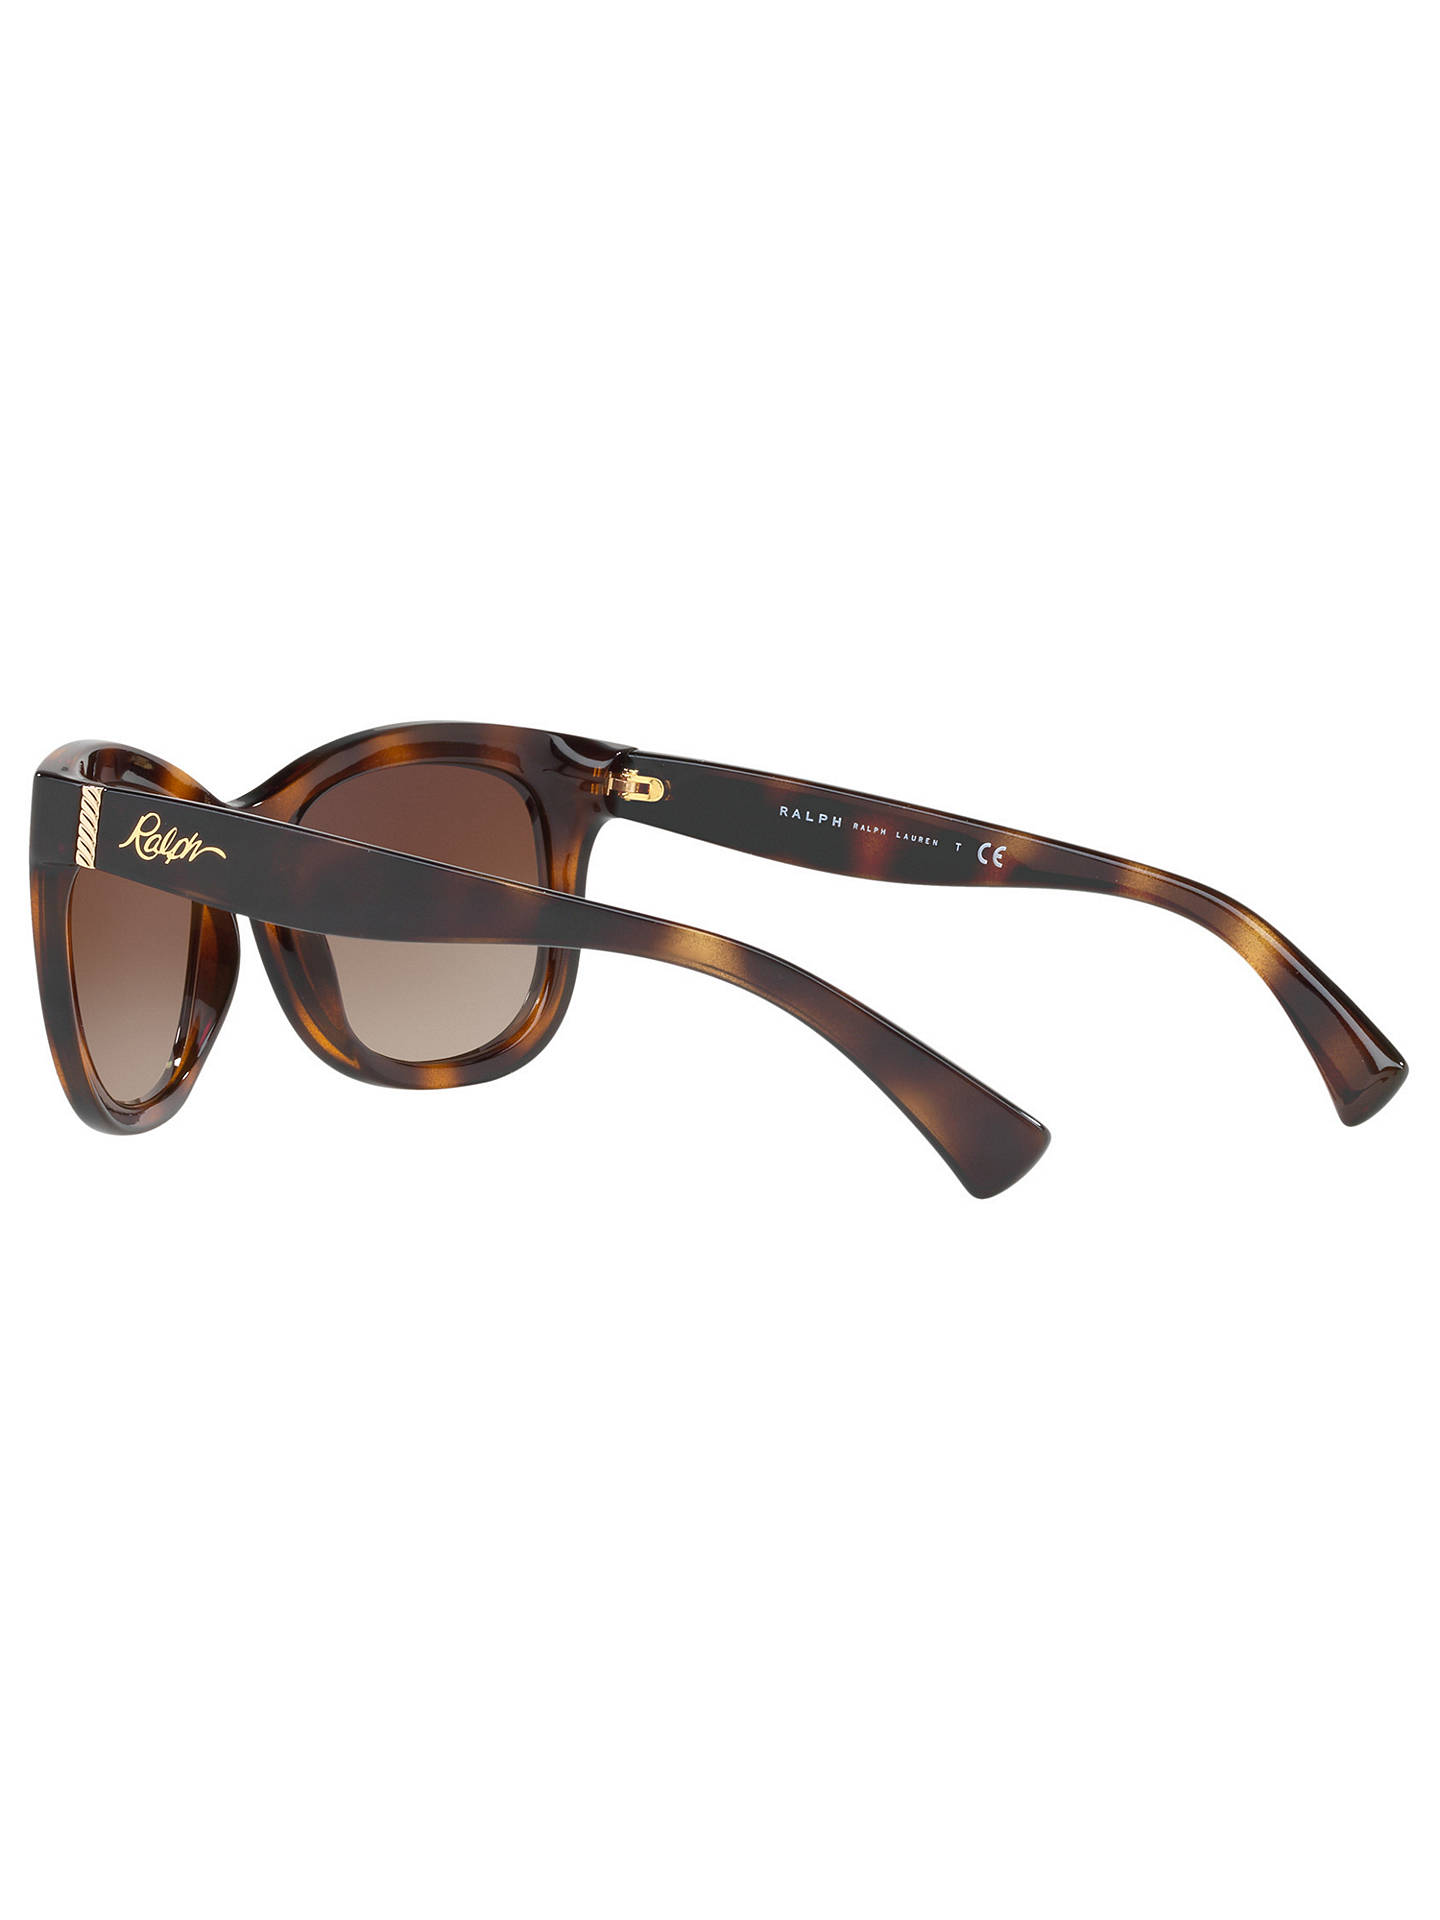 Buy Ralph RA5234 Square Sunglasses, Tortoise/Brown Gradient Online at johnlewis.com